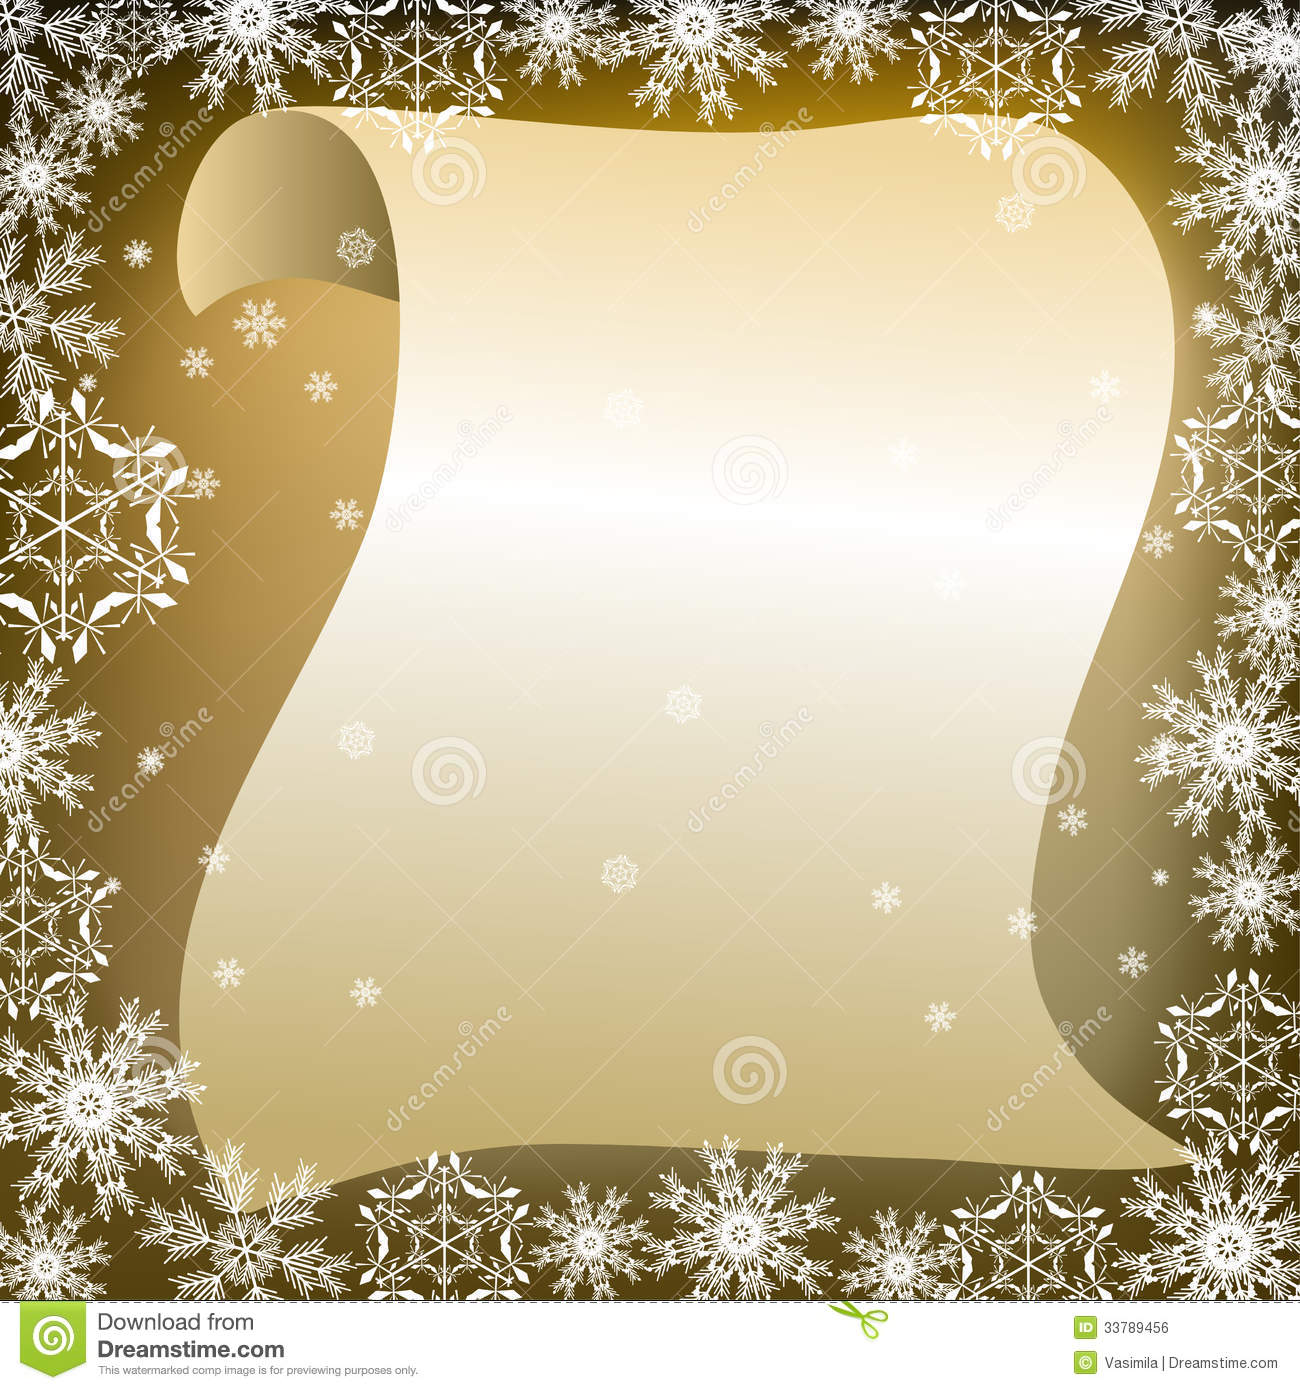 Letter To Santa Claus Royalty Free Stock Image Image